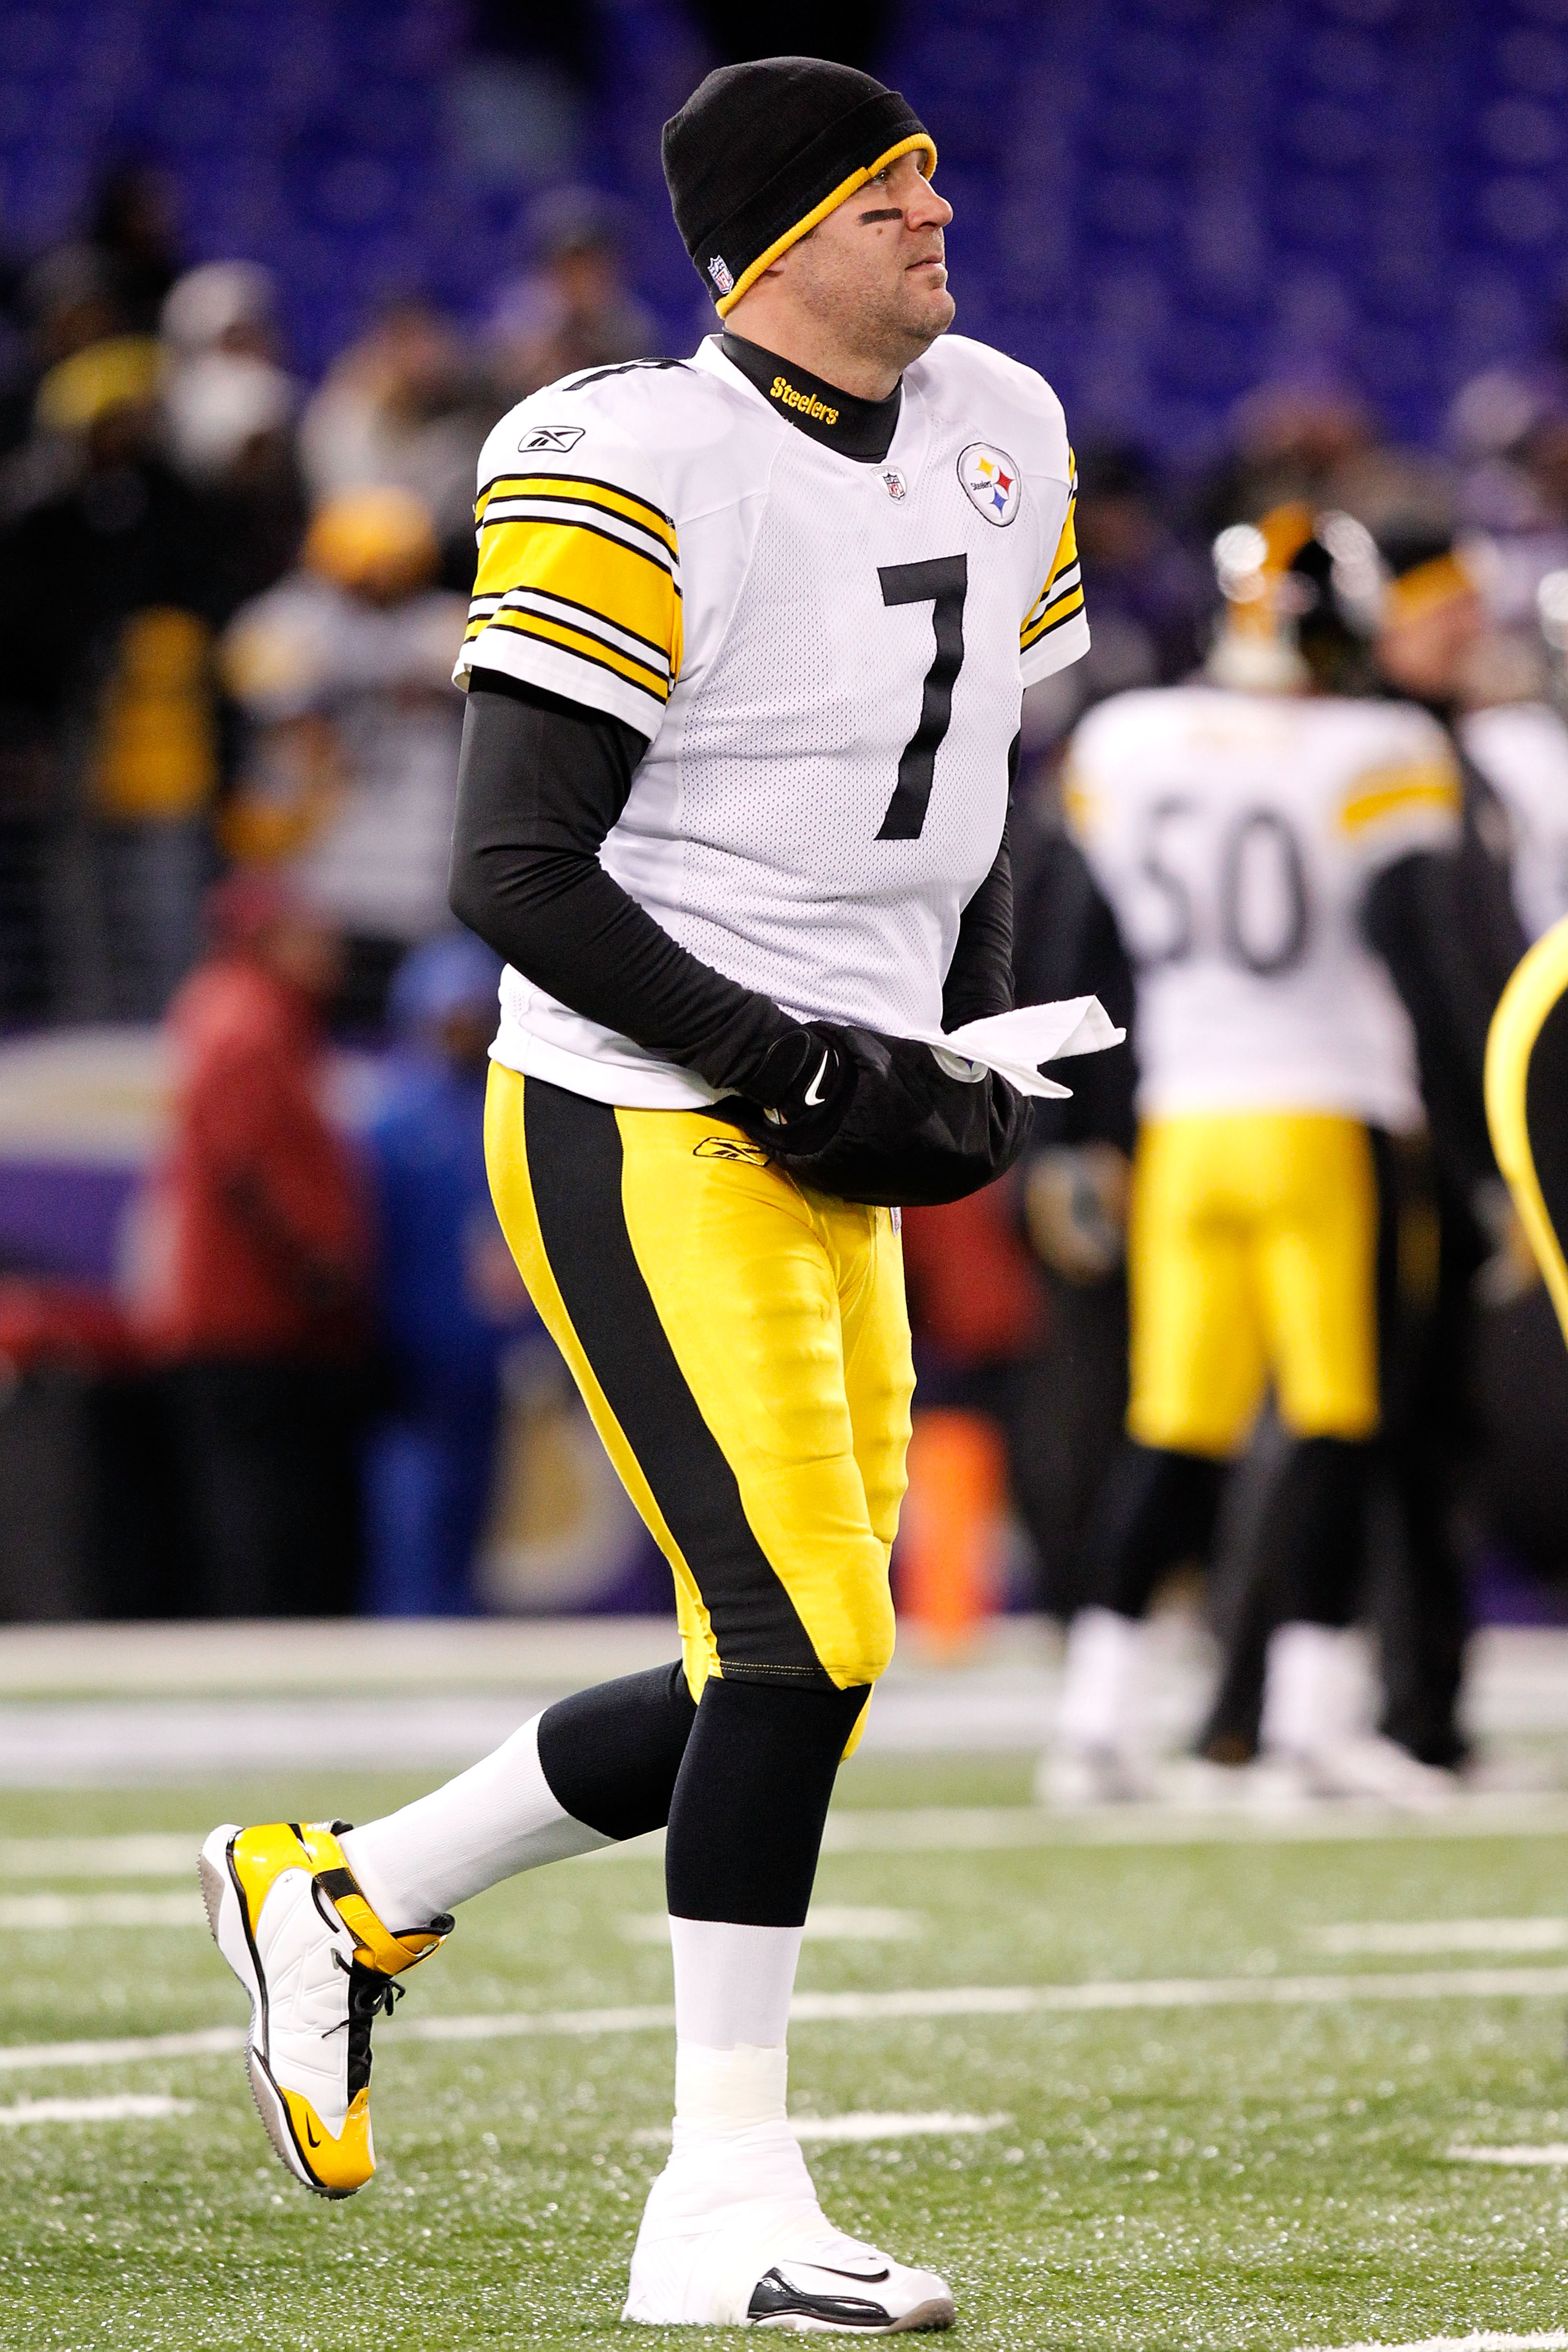 BALTIMORE, MD - DECEMBER 05:  Quarterback Ben Roethlisberger #7 of the Pittsburgh Steelers warms up before playing against the Baltimore Ravens at M&T Bank Stadium on December 5, 2010 in Baltimore, Maryland.  (Photo by Geoff Burke/Getty Images)